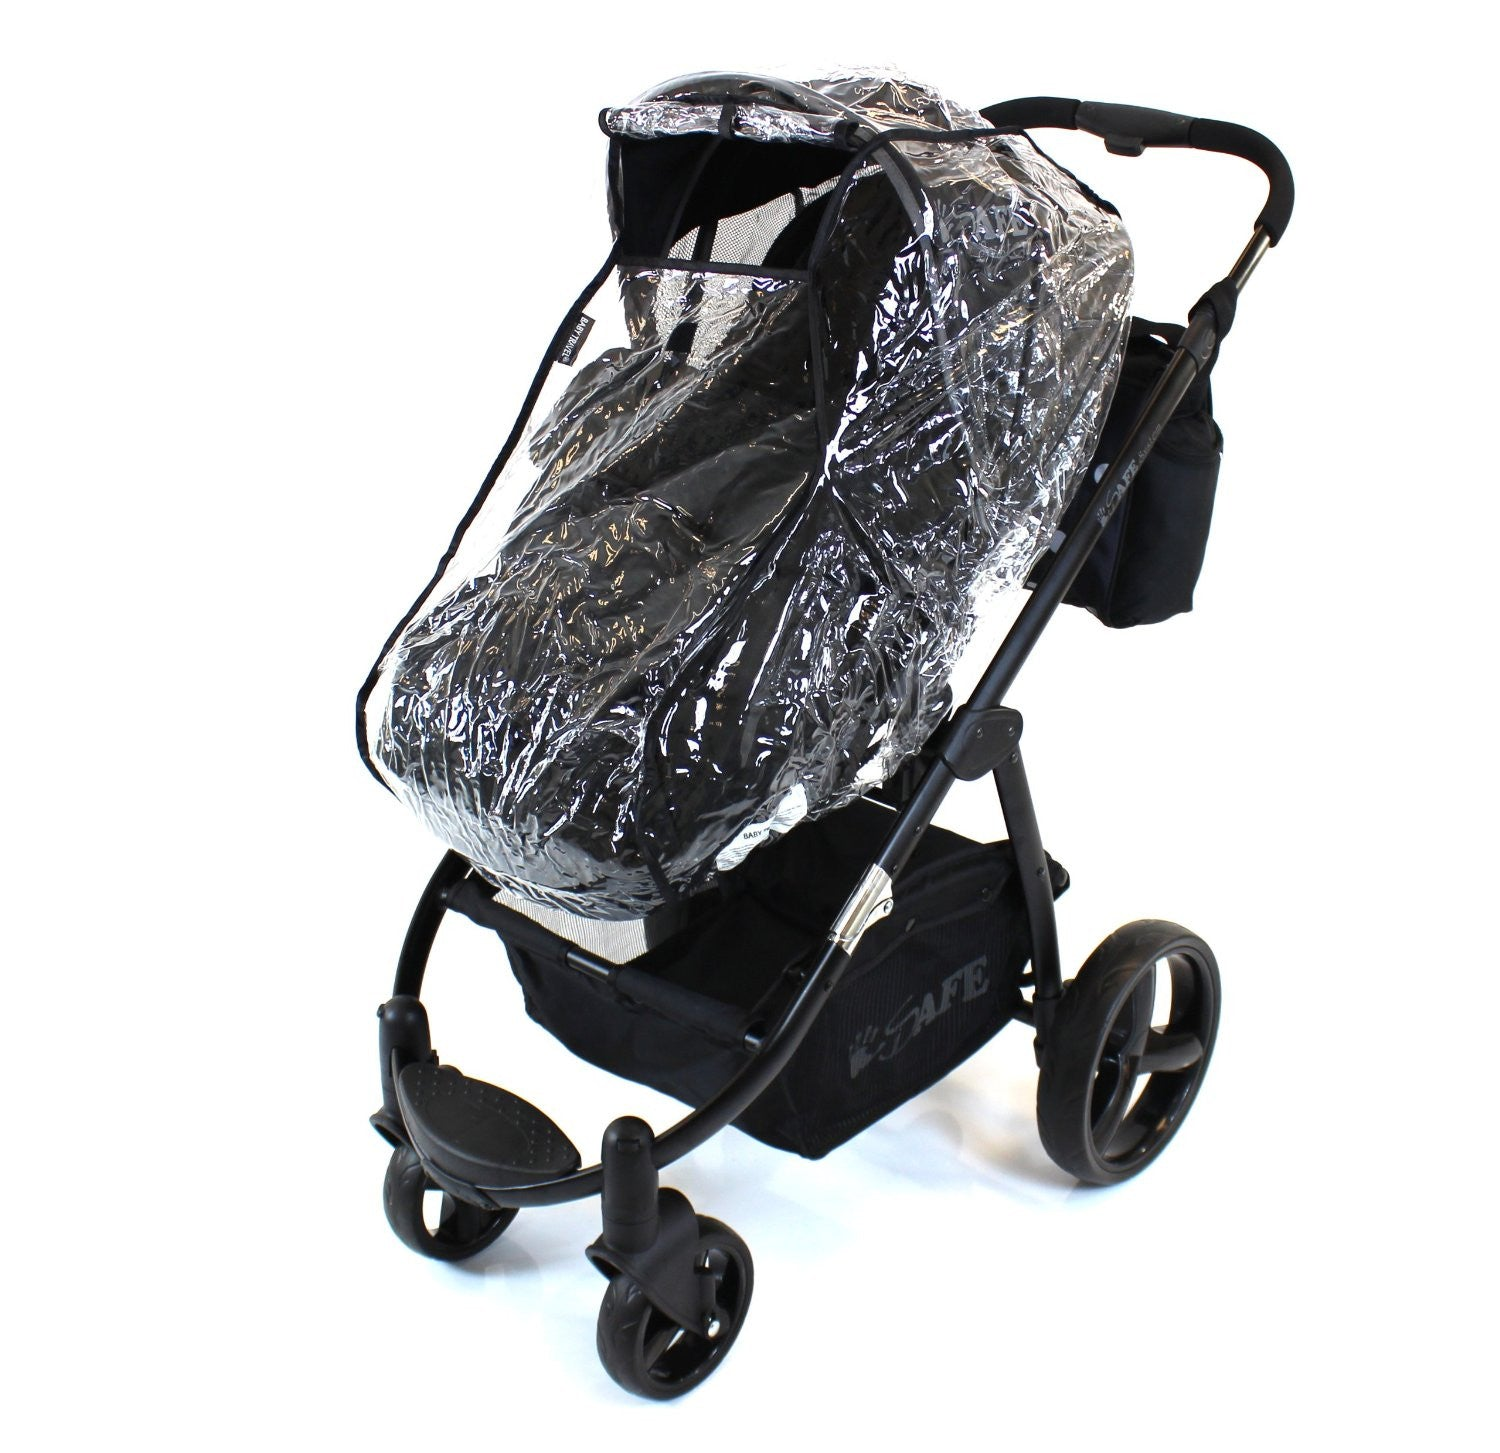 NEW BUGABOO FROG//CAM//CAM3 STROLLER SUN EXTENDABLE CANOPY BLACK PINK RED GRAY